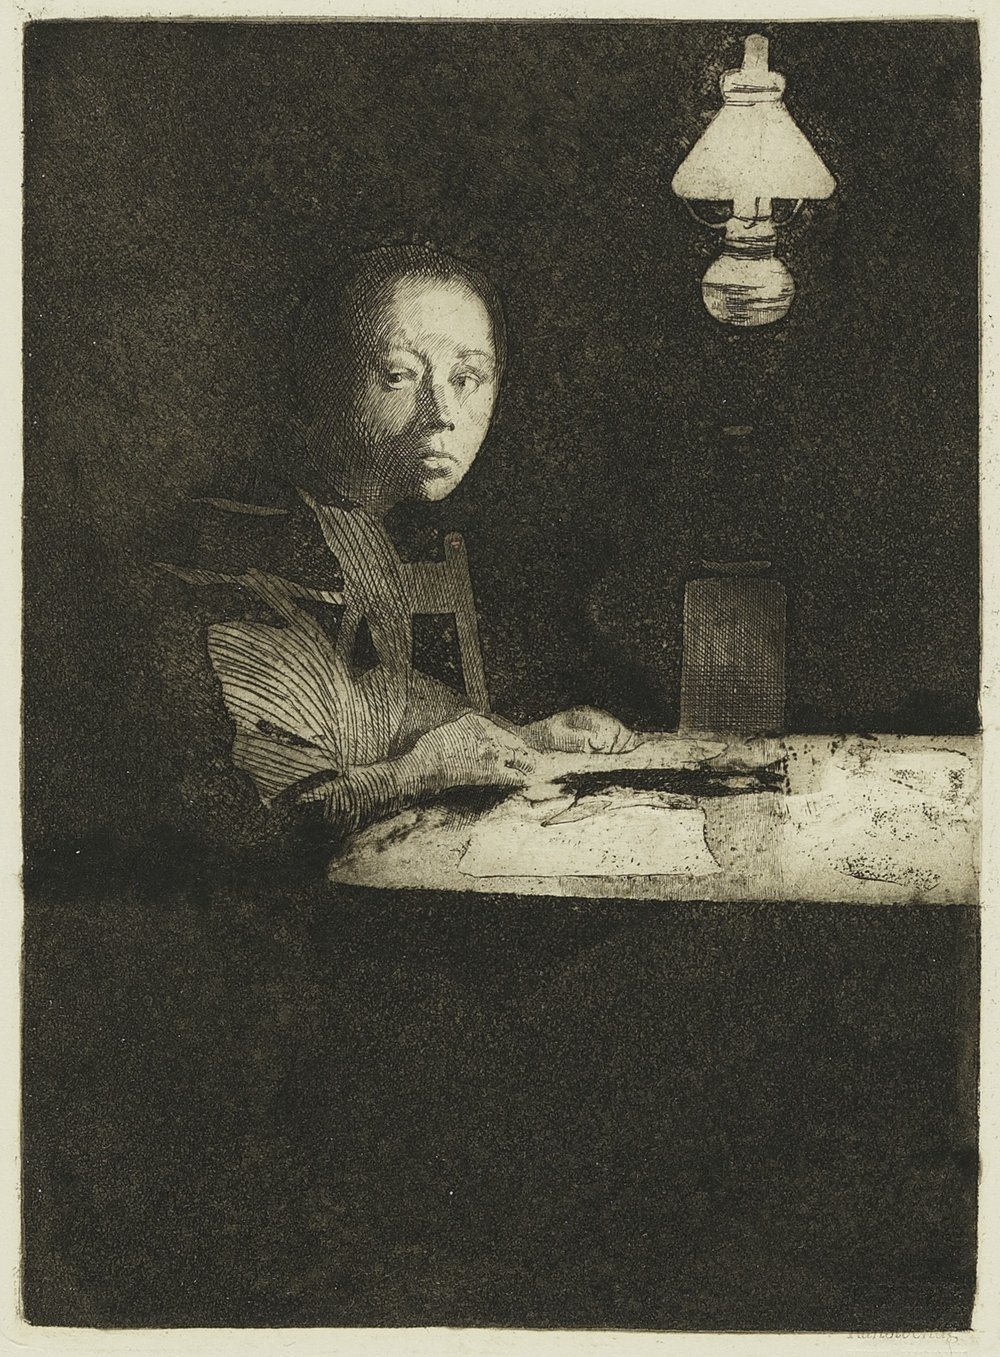 Selbstbildnis am Tisch (Self-Portrait at Table), about 1893; published about 1931 Kathe Kollwitz, German, 1867 - 1945 Etching and aquatint on wove paper Sheet: 12 1/4 x 9 7/8 in. (31.1 x 25.1 cm) Purchased through the Guernsey Center Moore 1904 Memorial Fund, PR.963.144